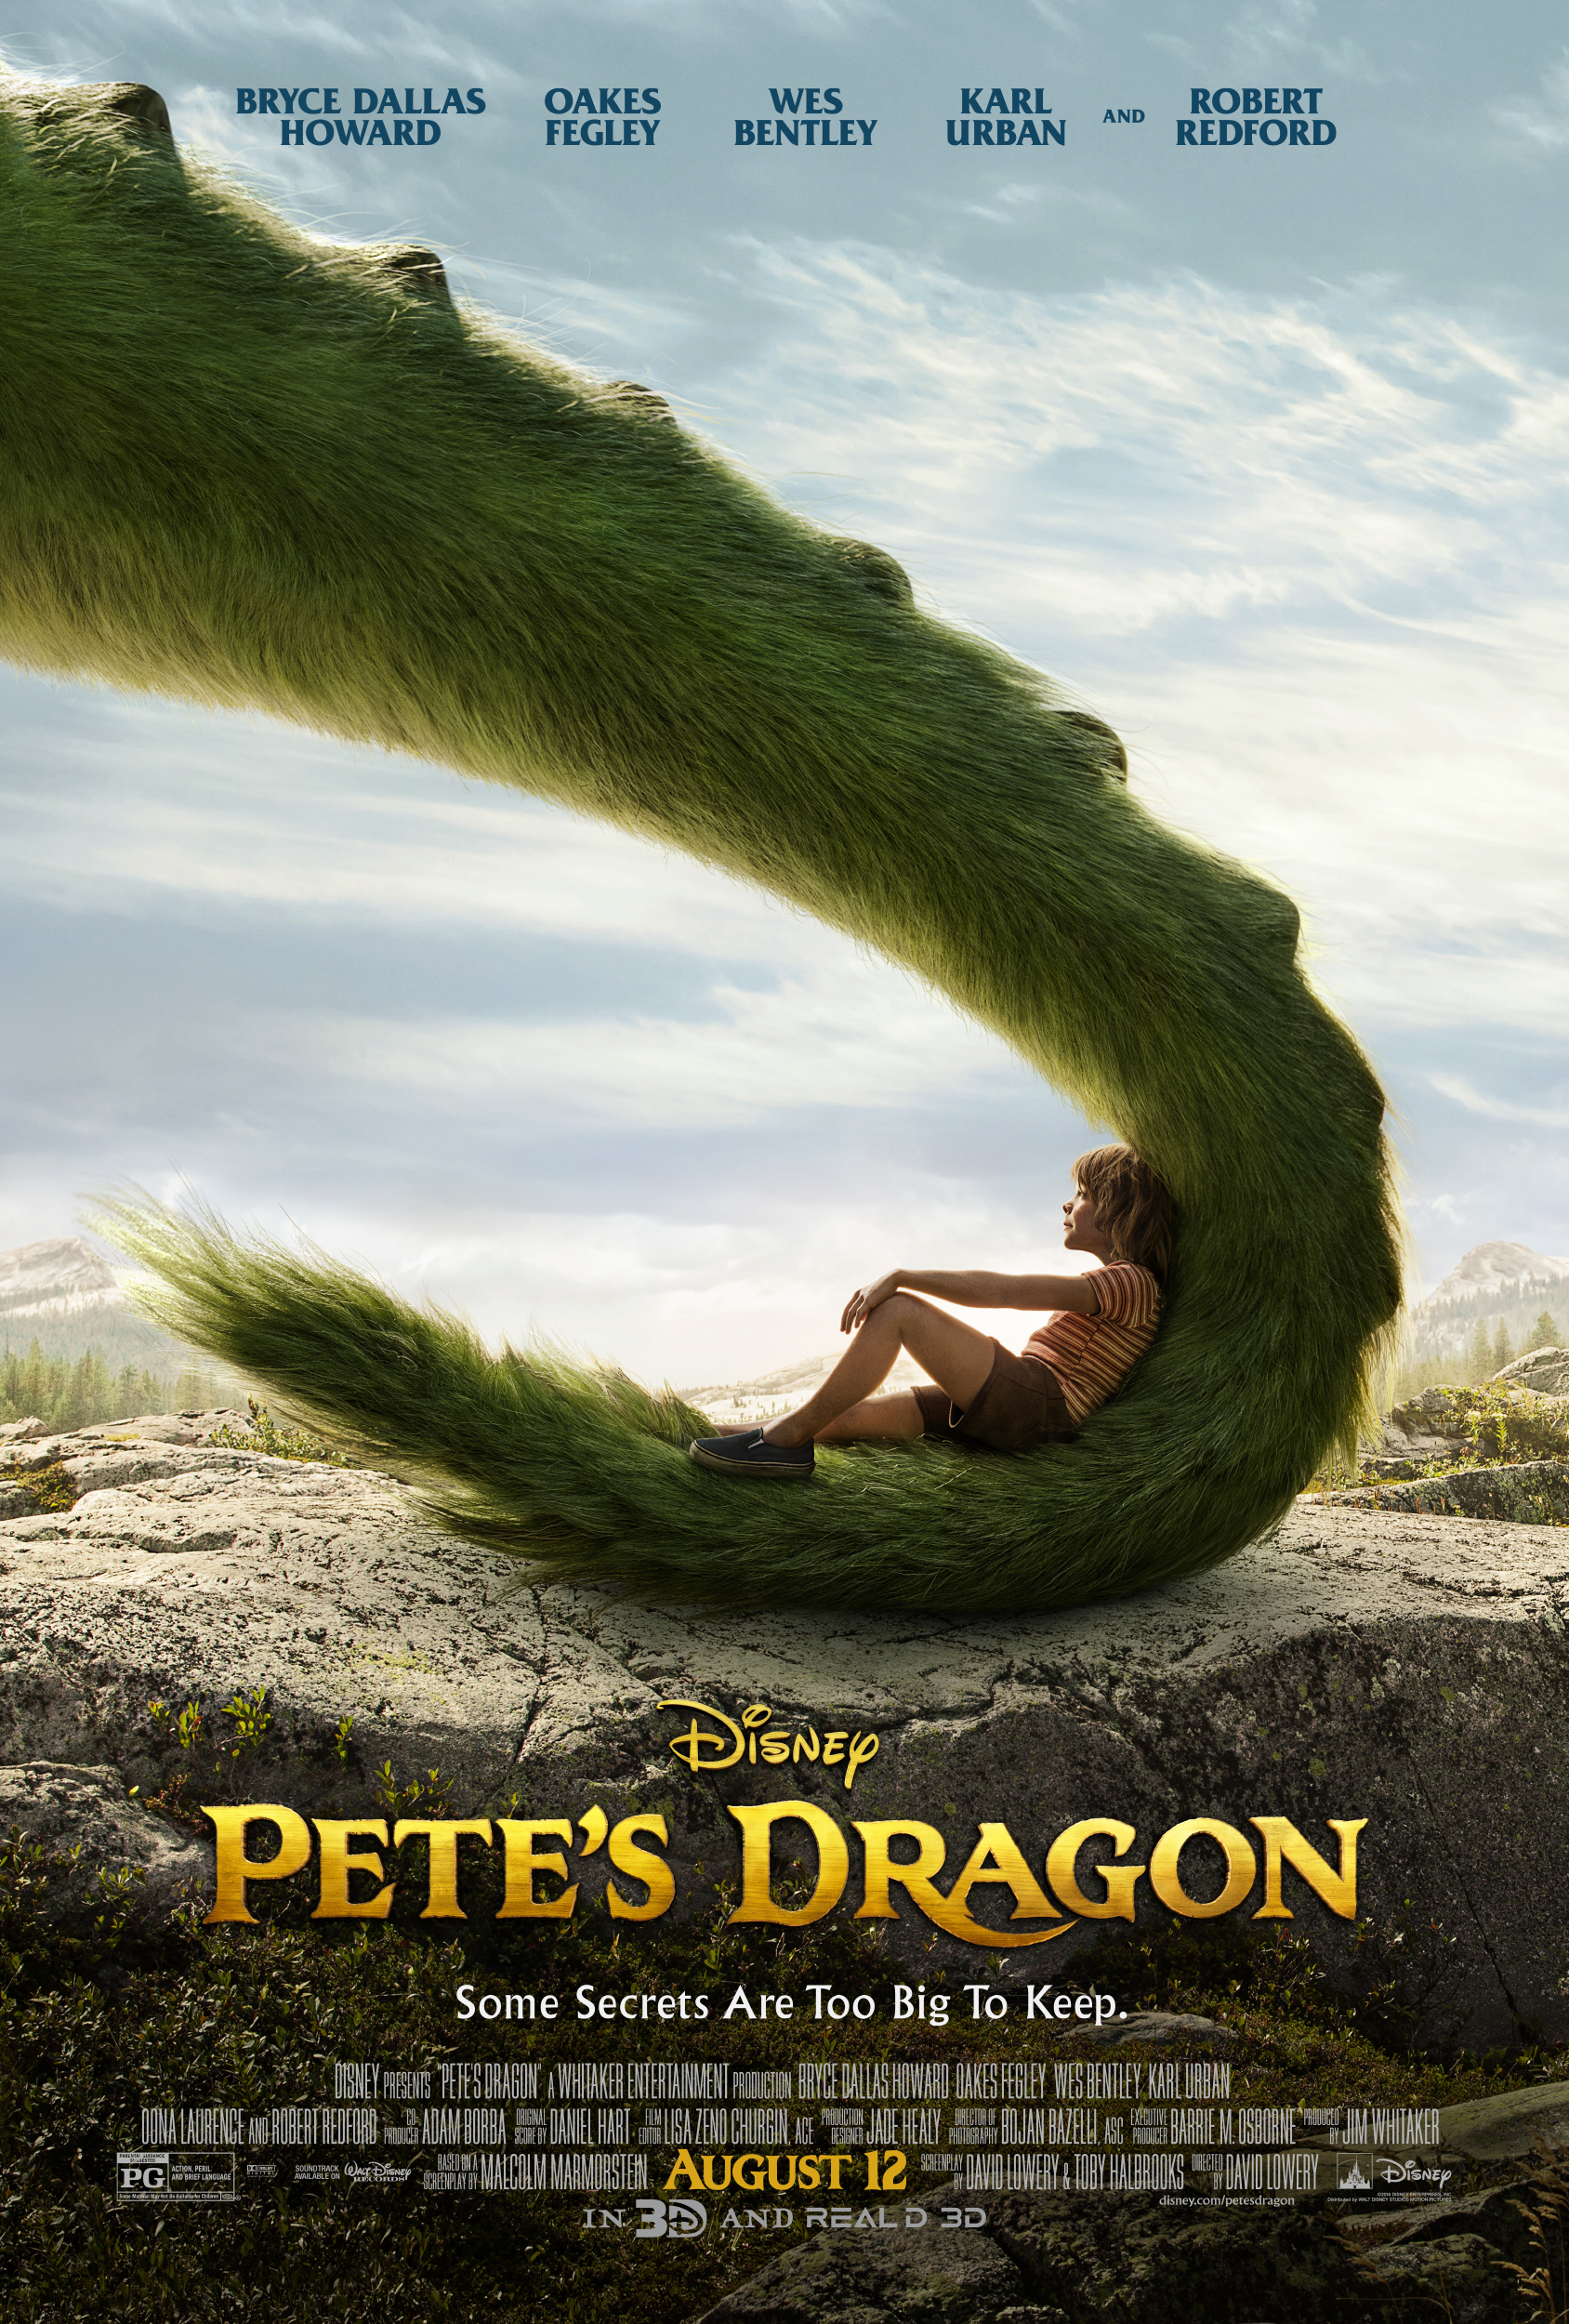 Petes Dragon Images 2016 Movie Poster HD Wallpaper And Background Photos